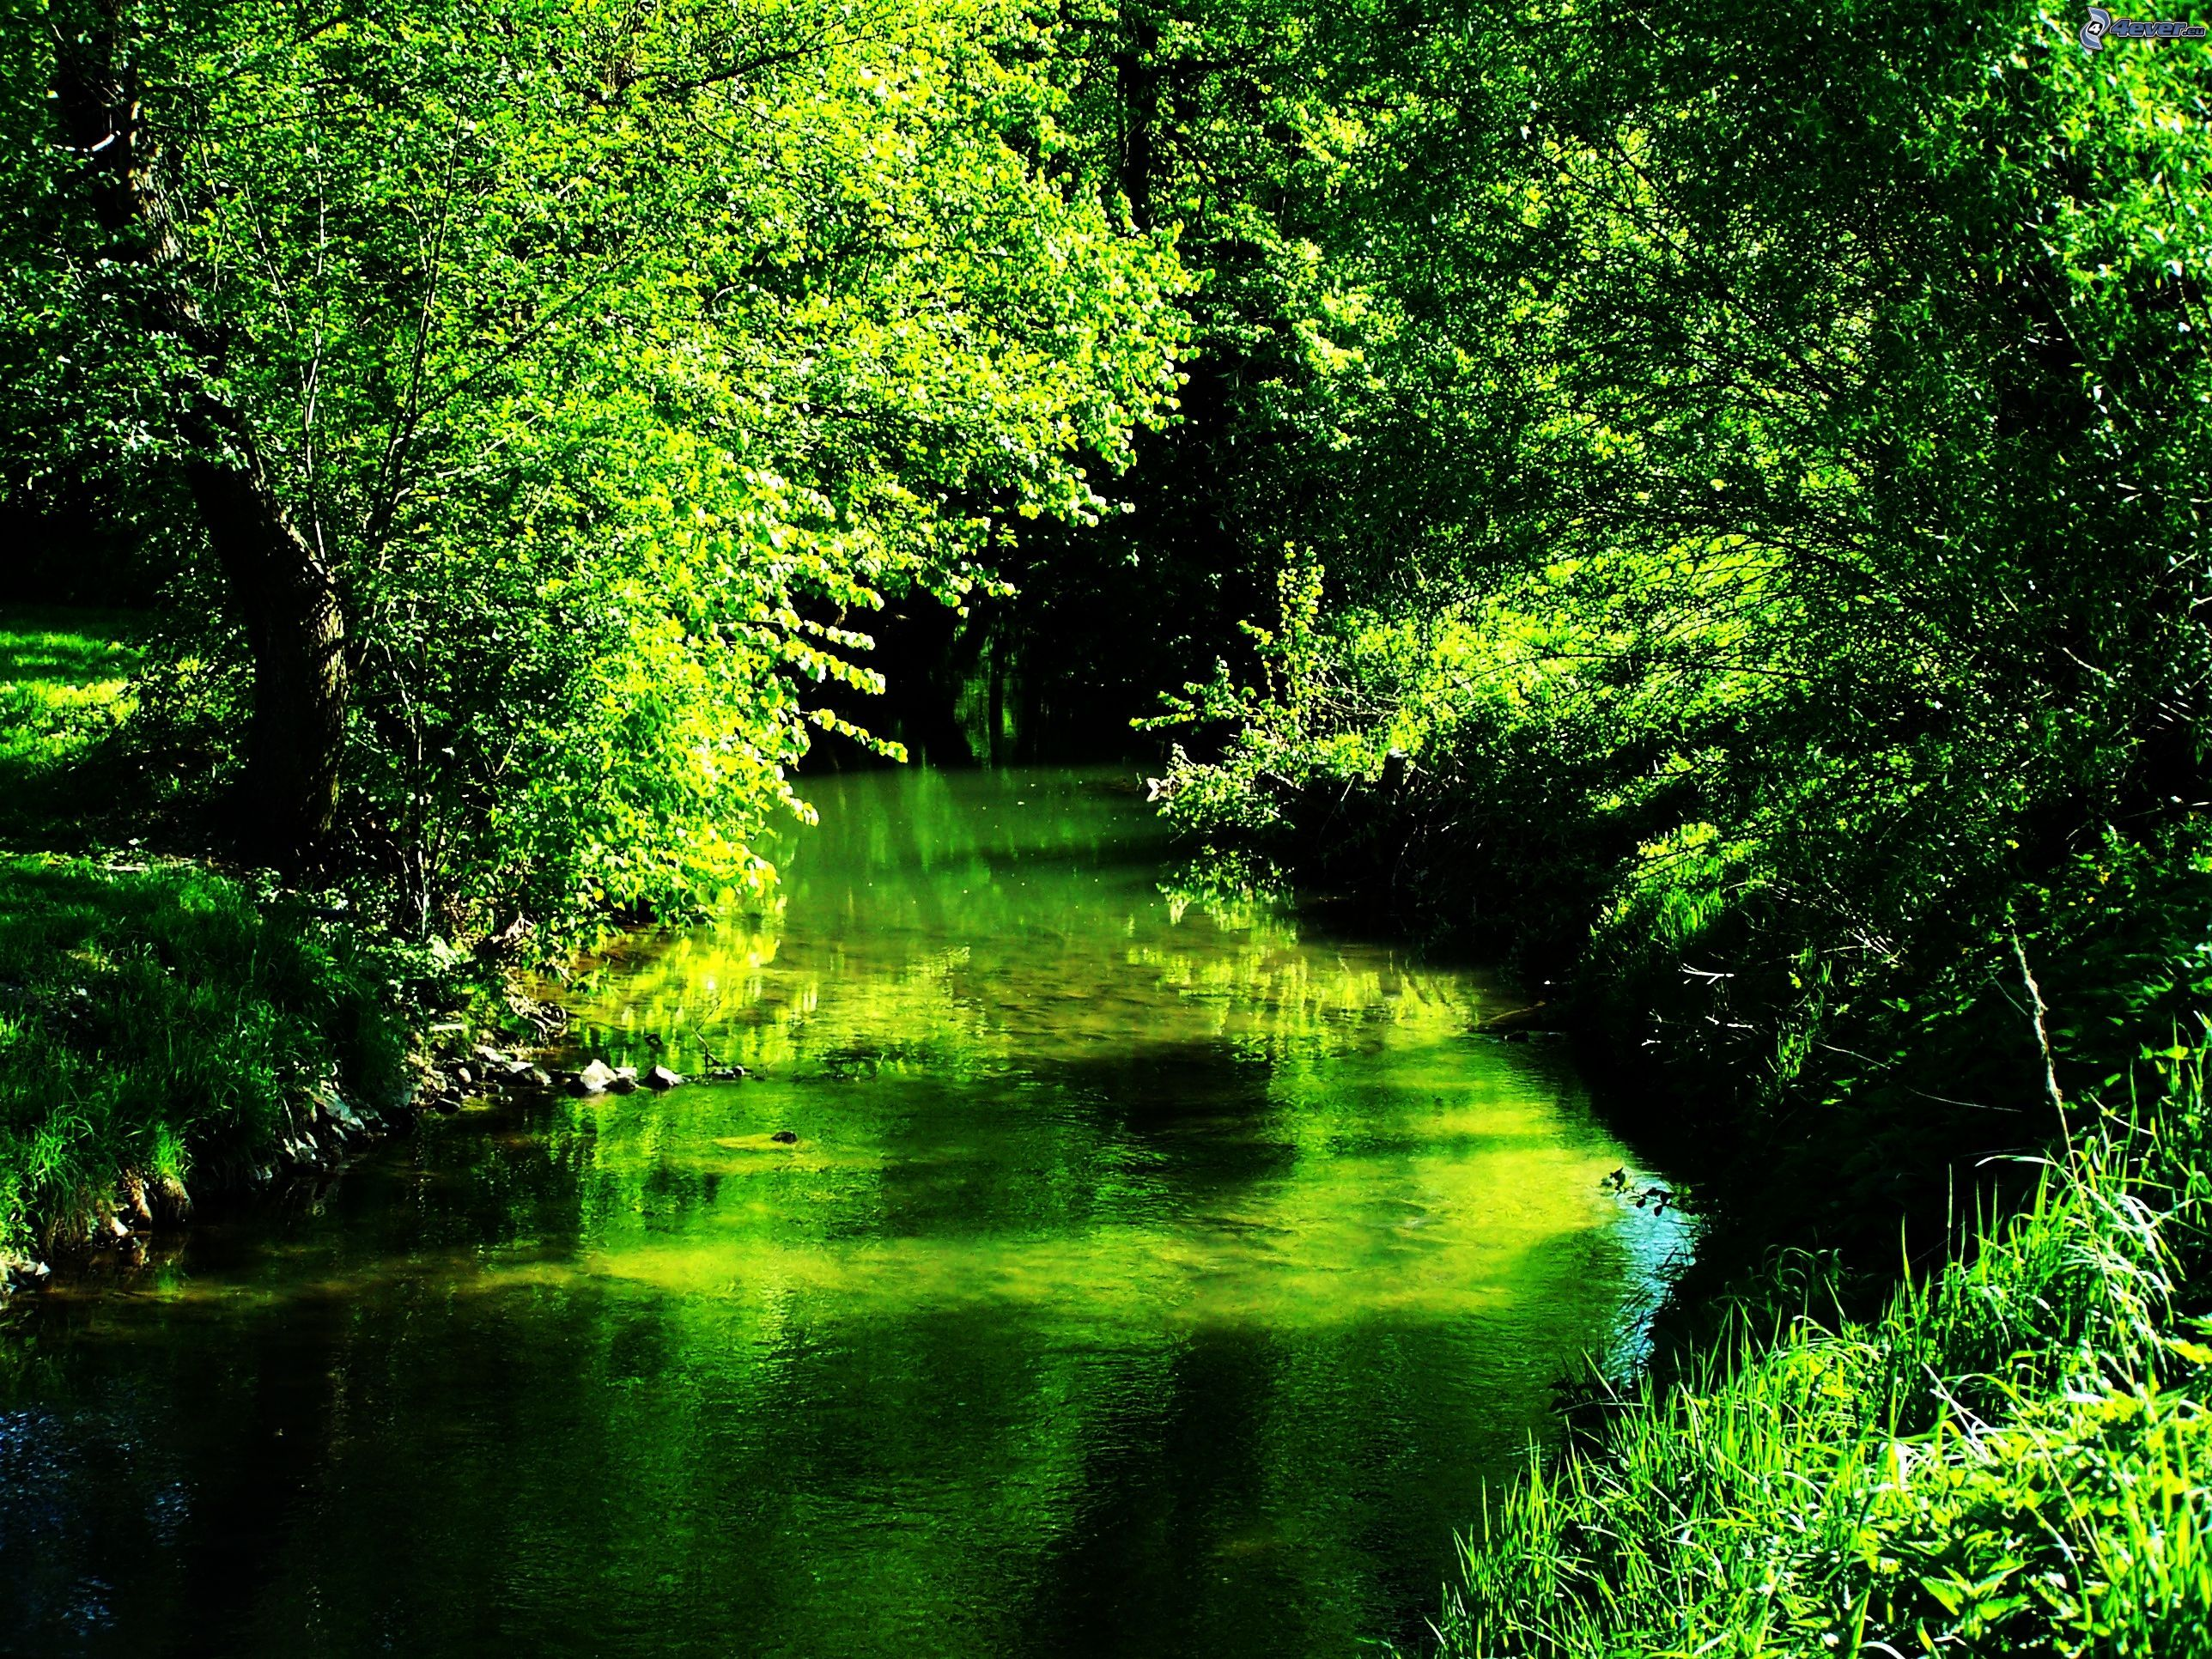 Http Pictures 4ever Eu Nature Landscapes Green Nature 148166